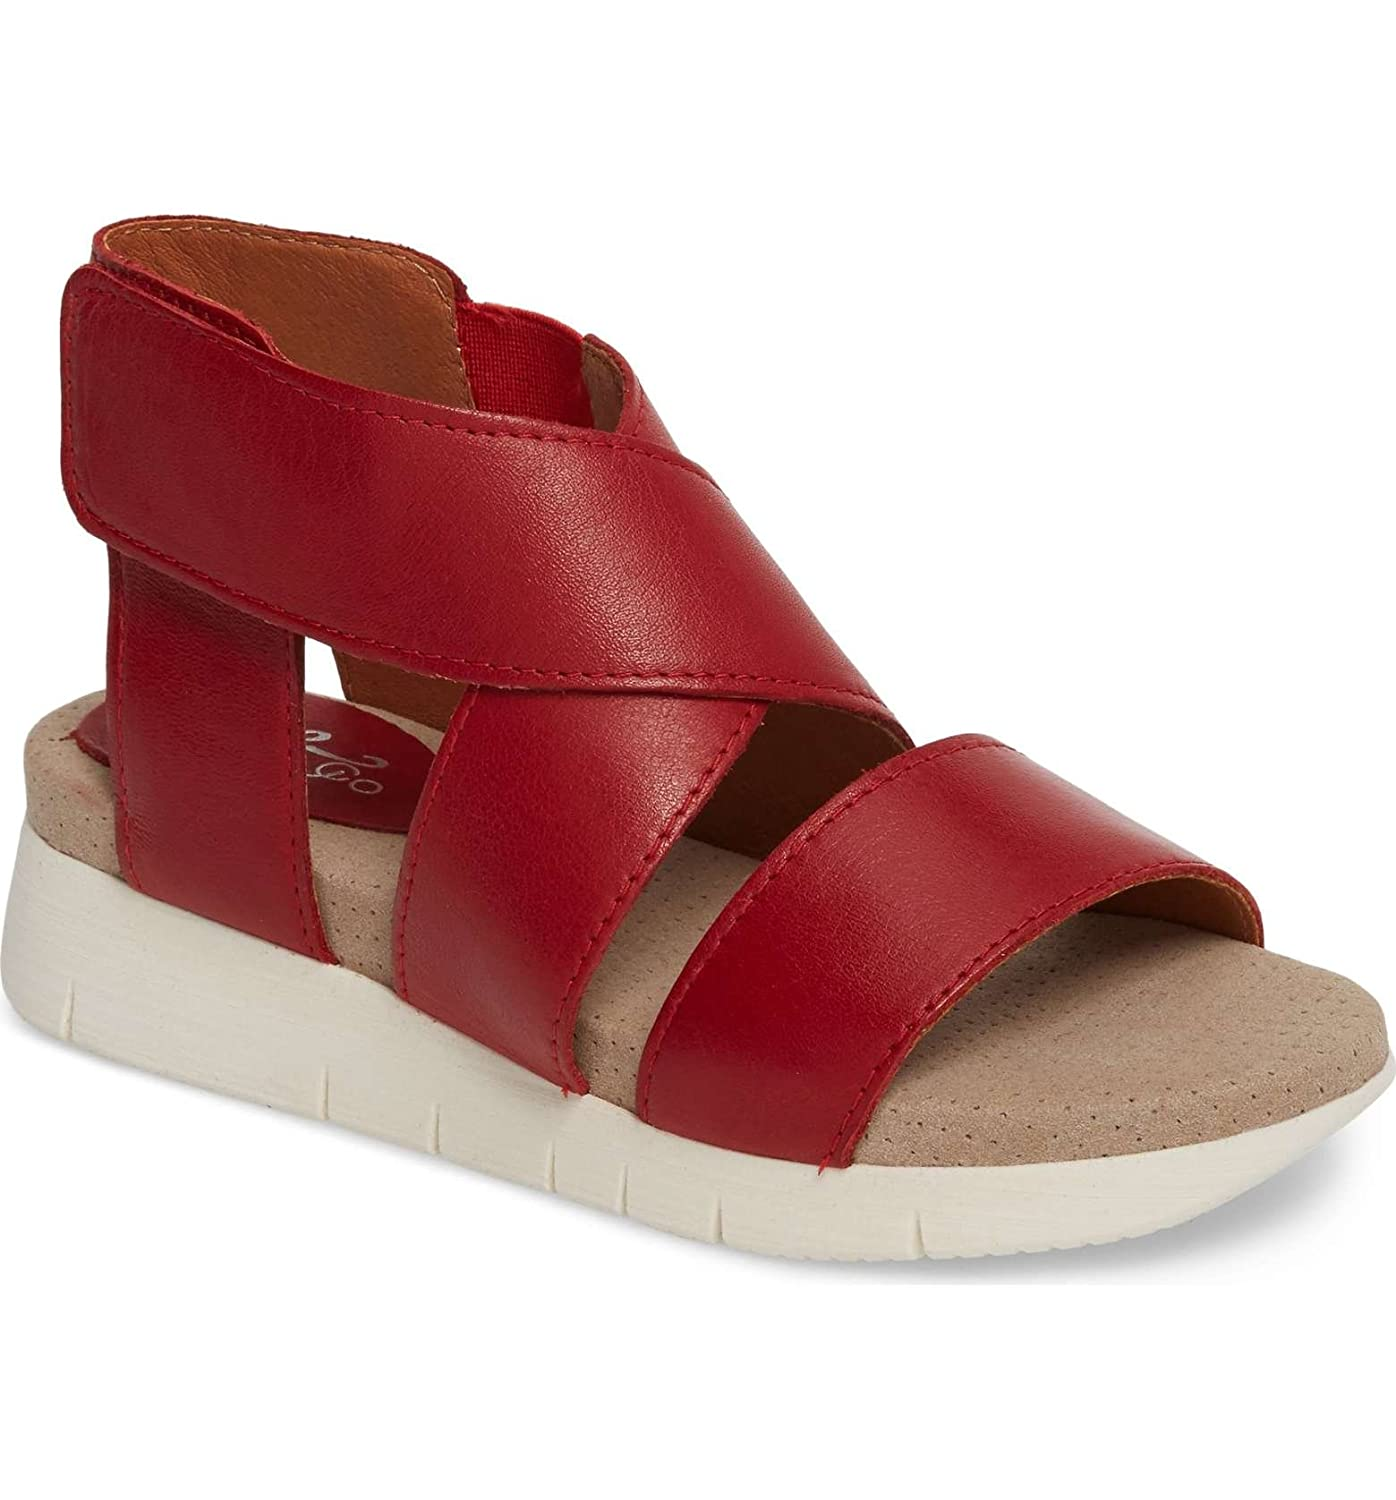 Bos. & Co. Women's Piper Sandal B075GQJZL7 37 M EU (6-6.5 US)|Red Sauvage Leather